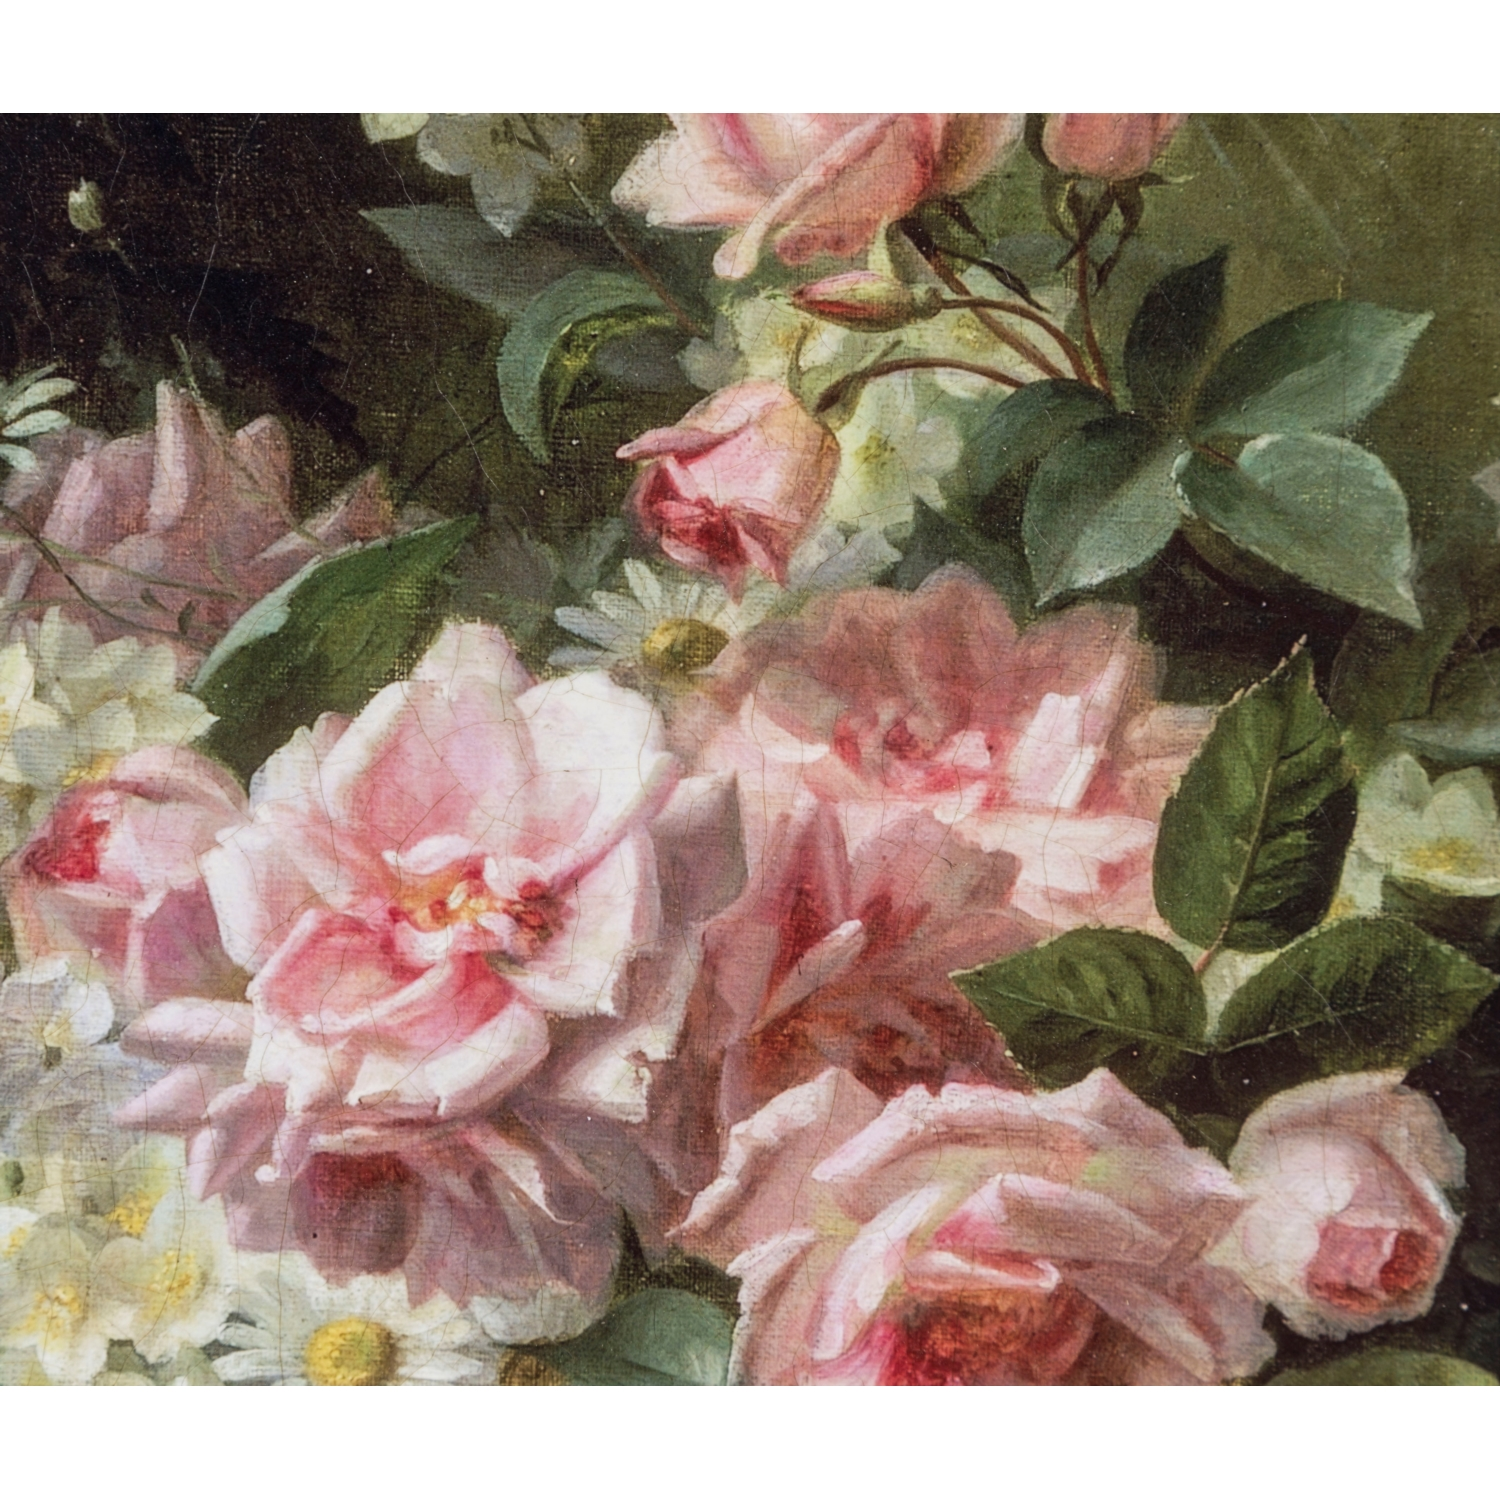 PINK ROSES AND DAISIES PANO 28X28 CM